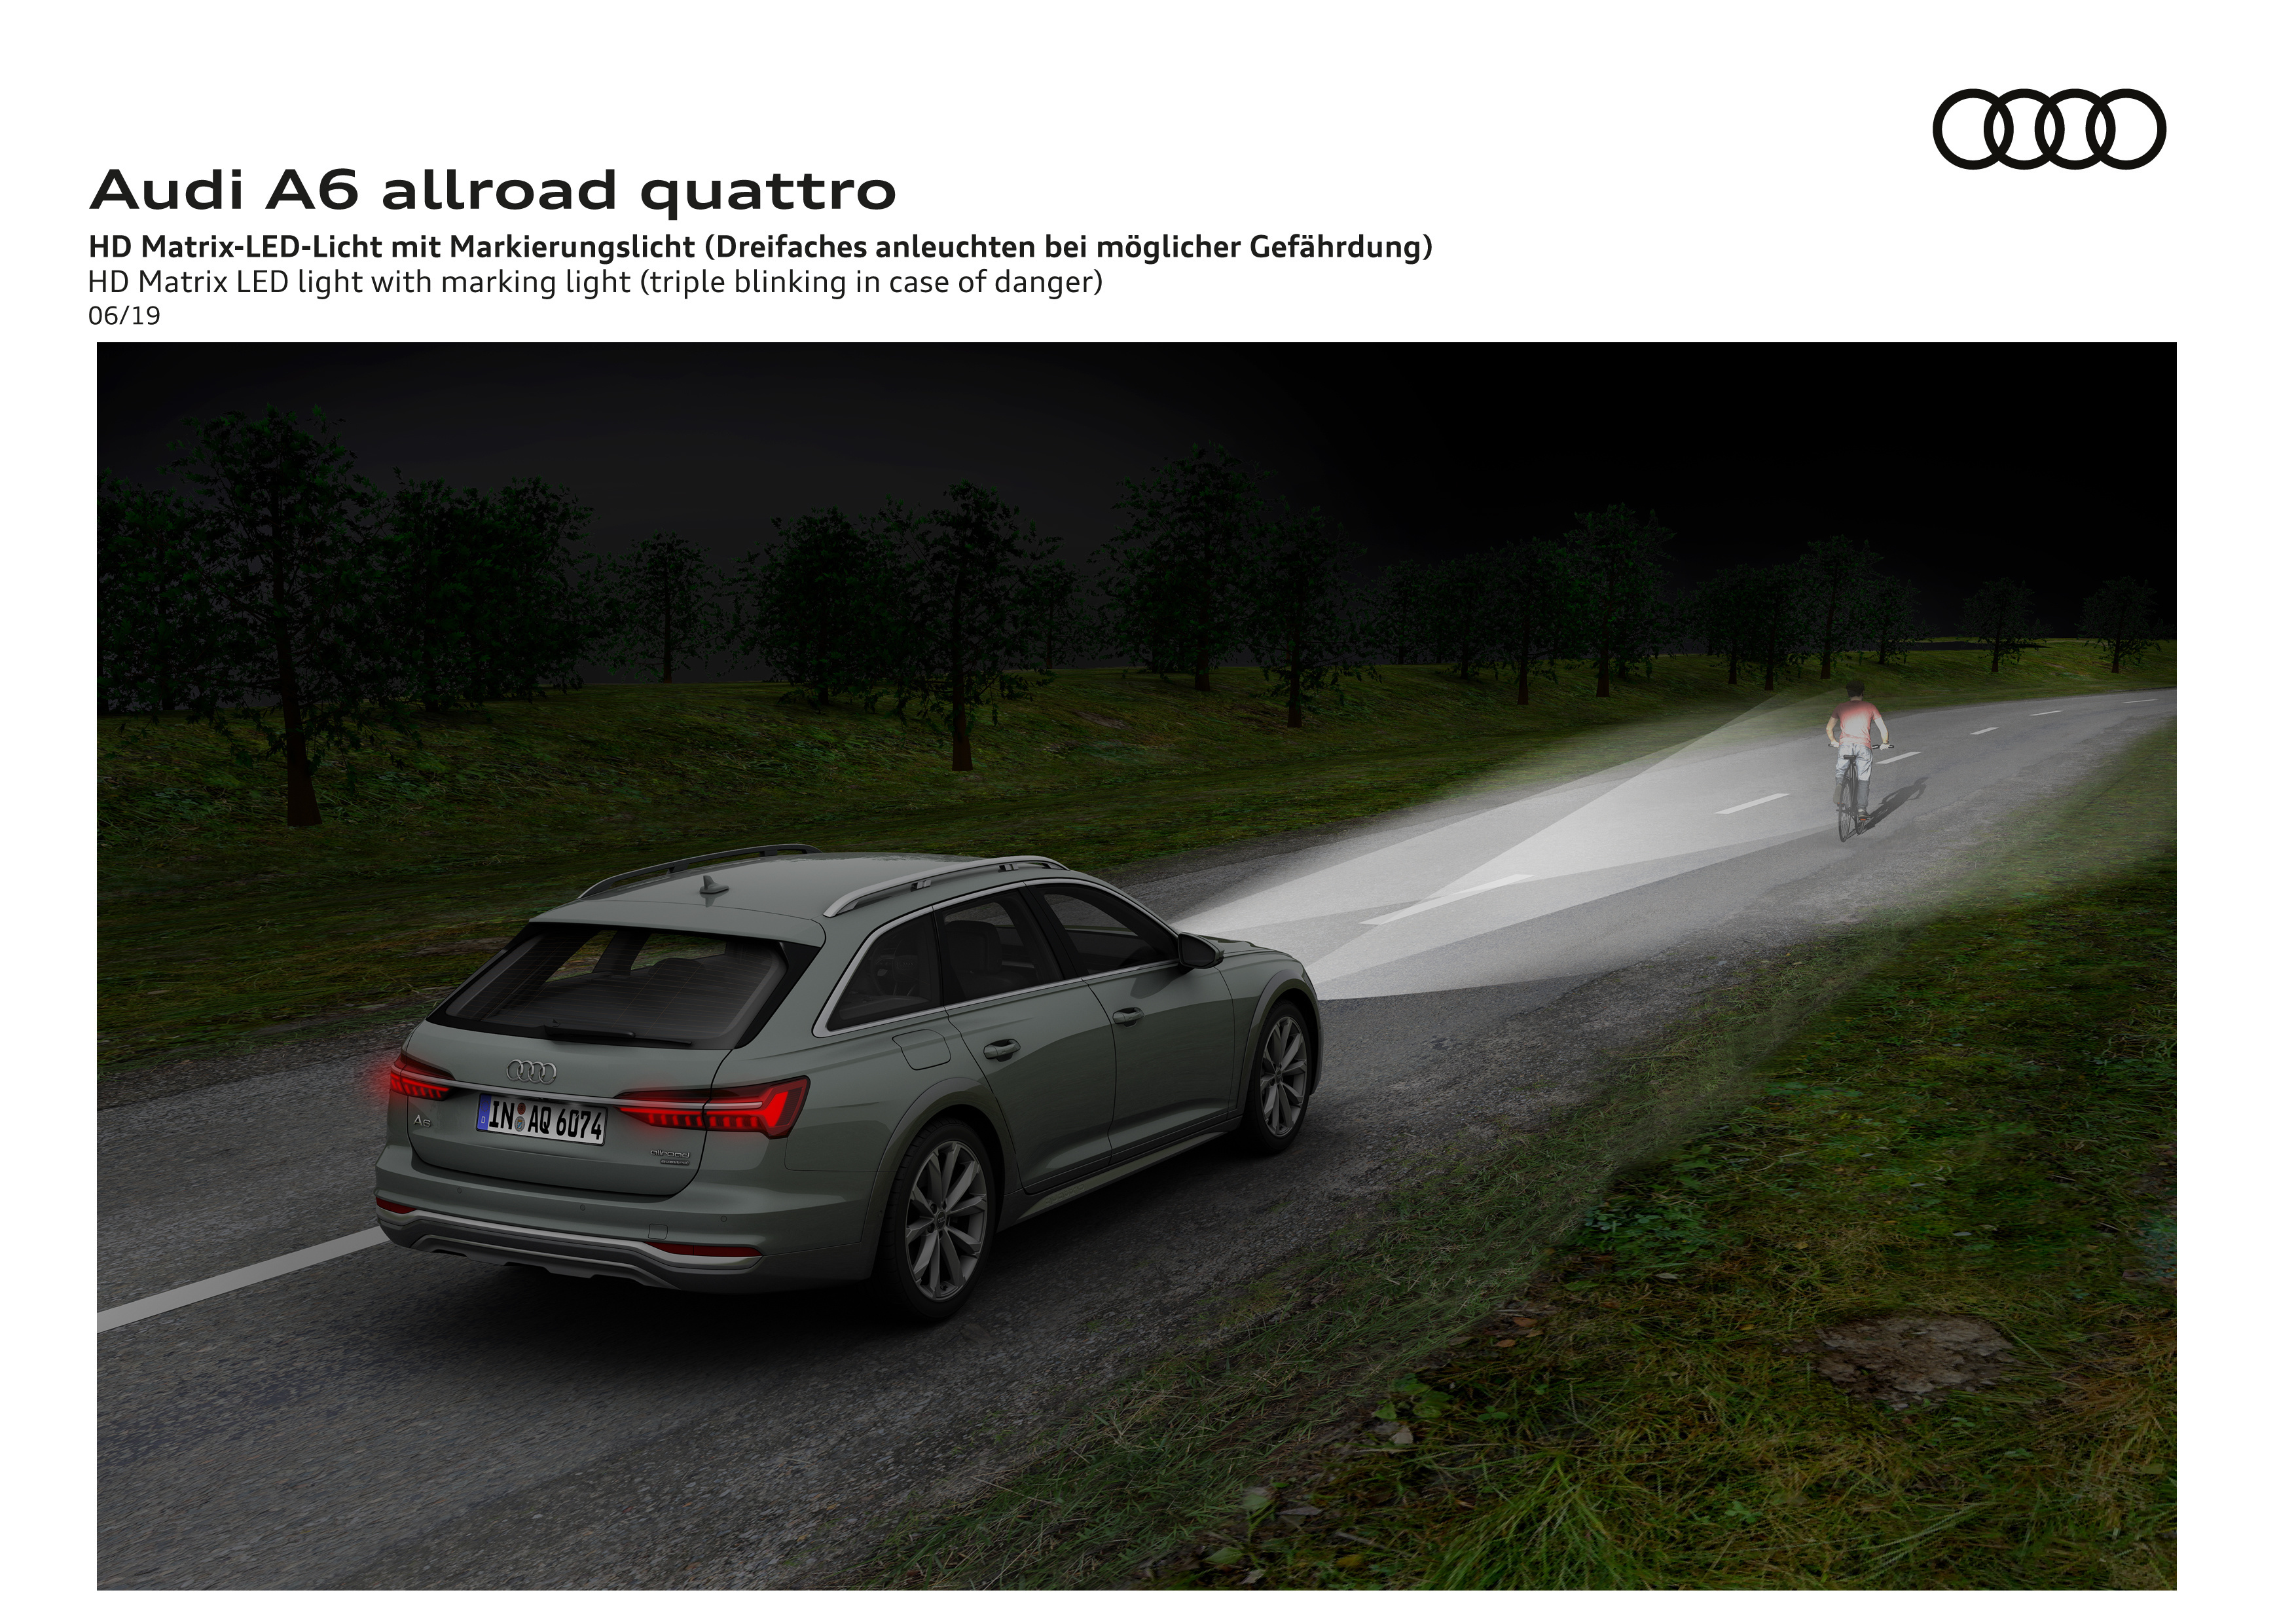 The New Audi A6 Allroad Quattro Was Revealed Just In Time For Its